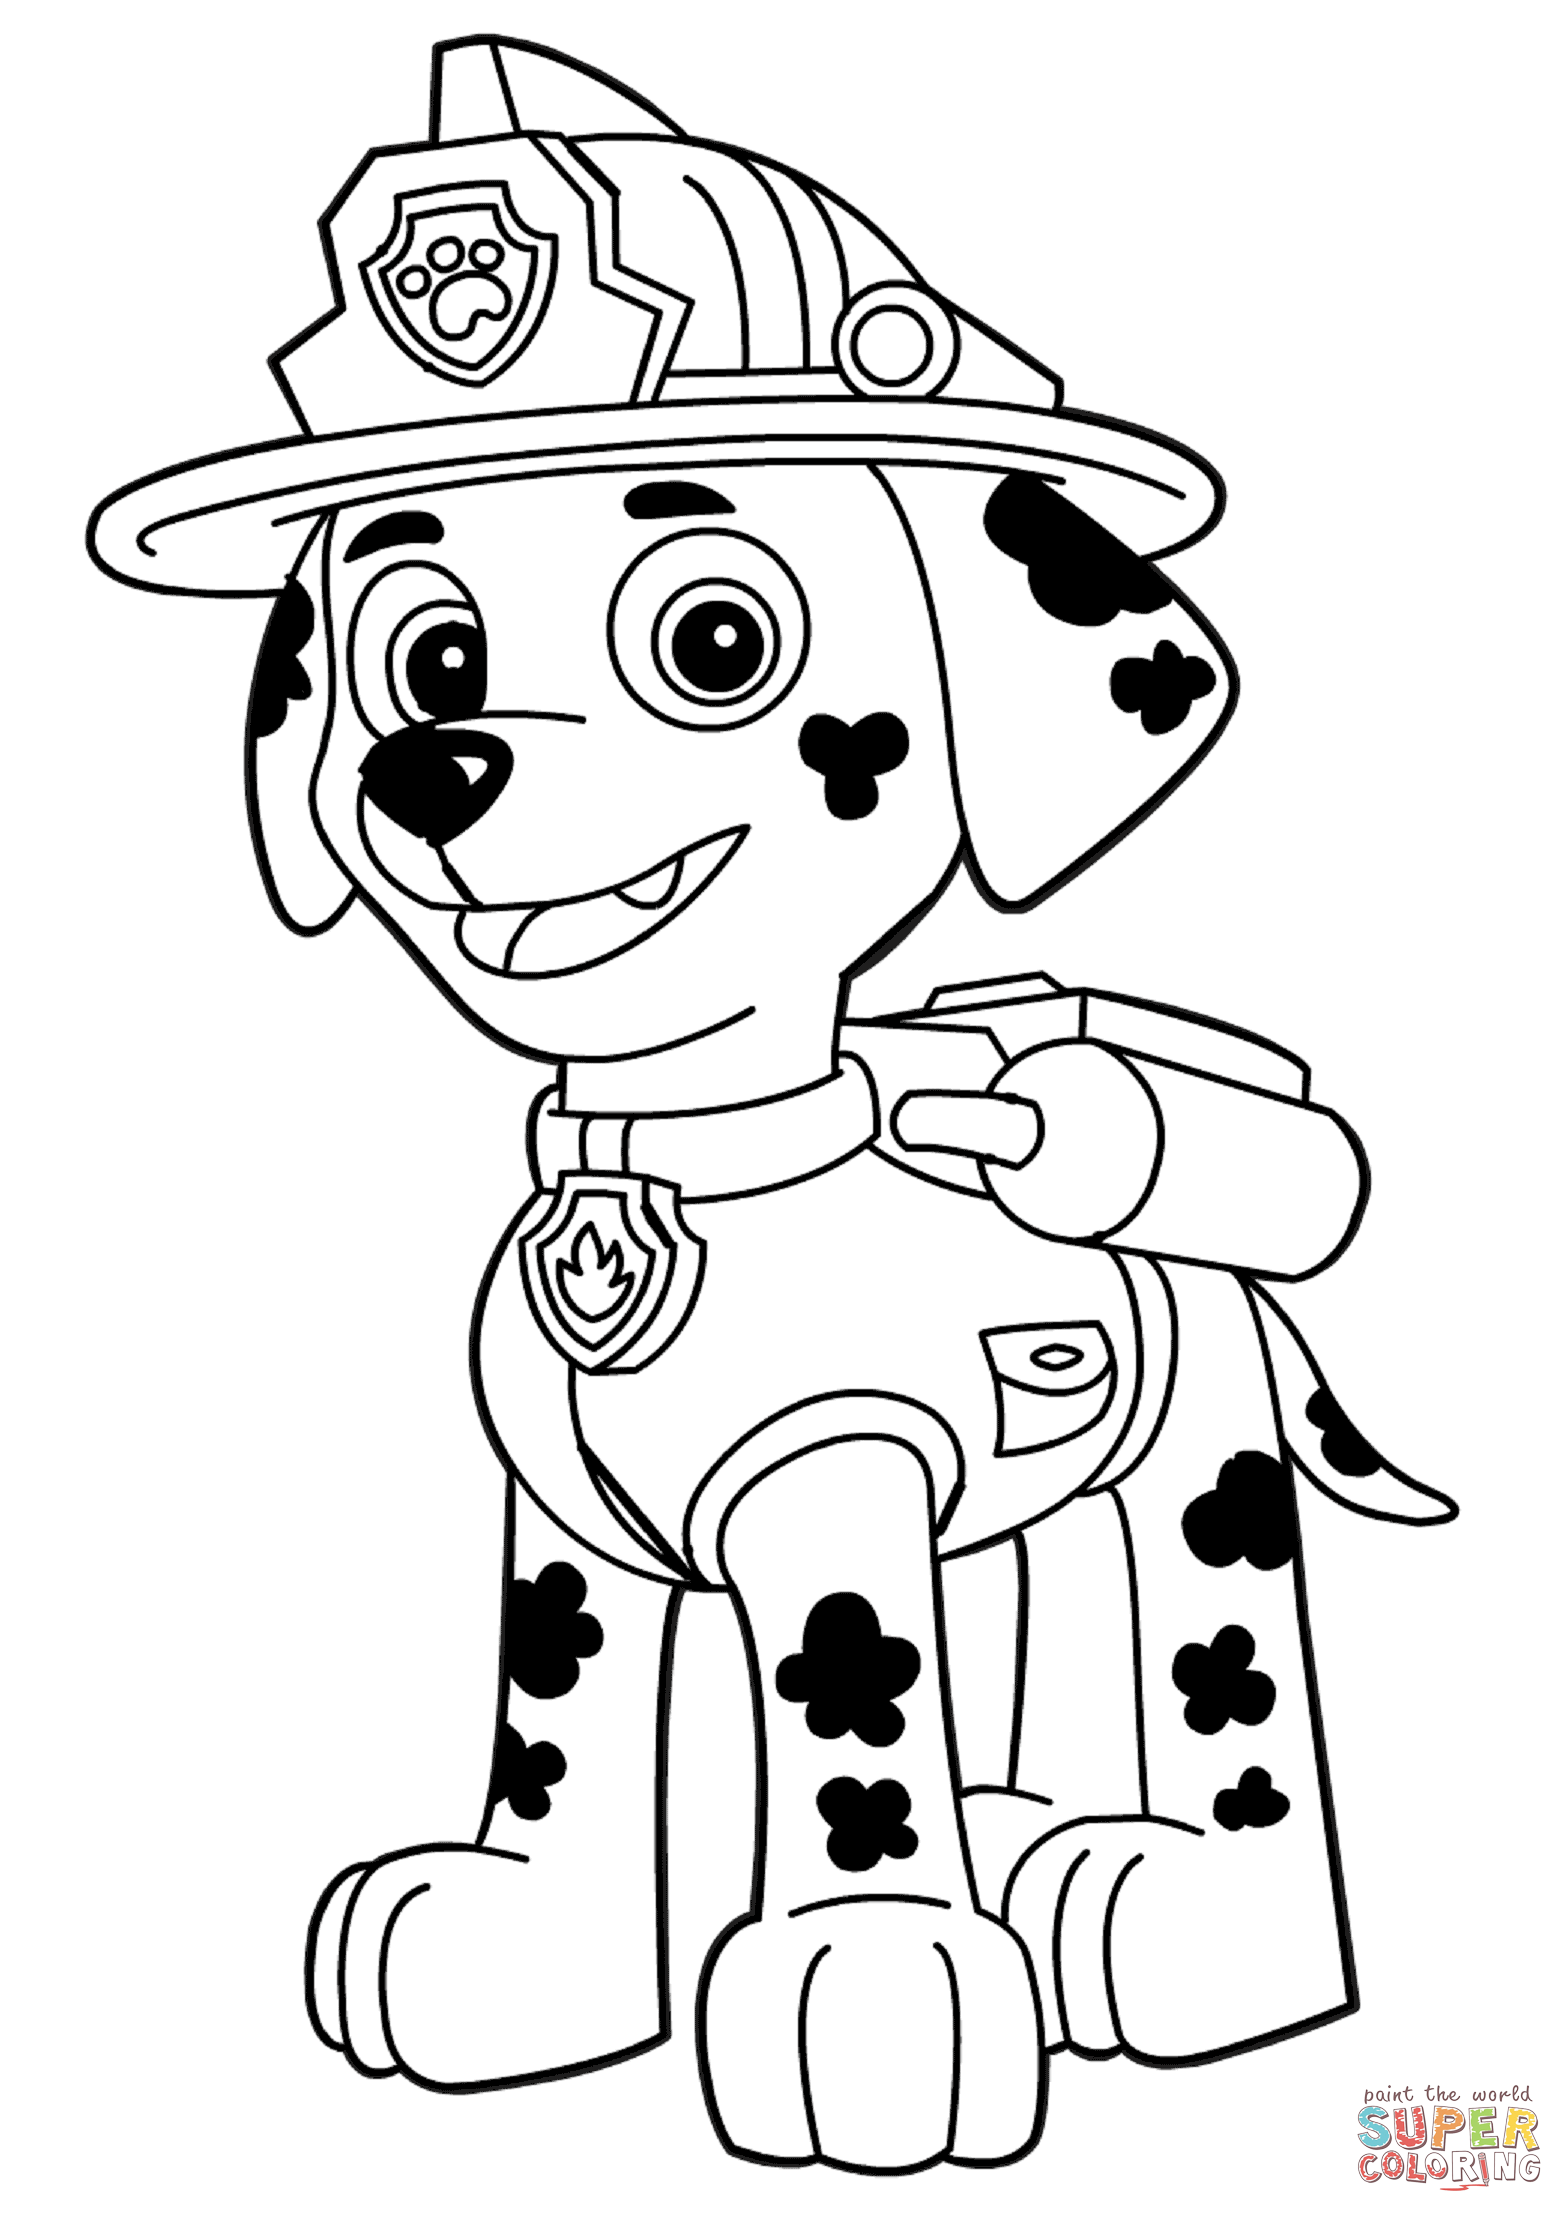 Chase the dog from paw partols clipart coloring page graphic library Paw Patrol Marshall coloring page | Free Printable Coloring Pages graphic library